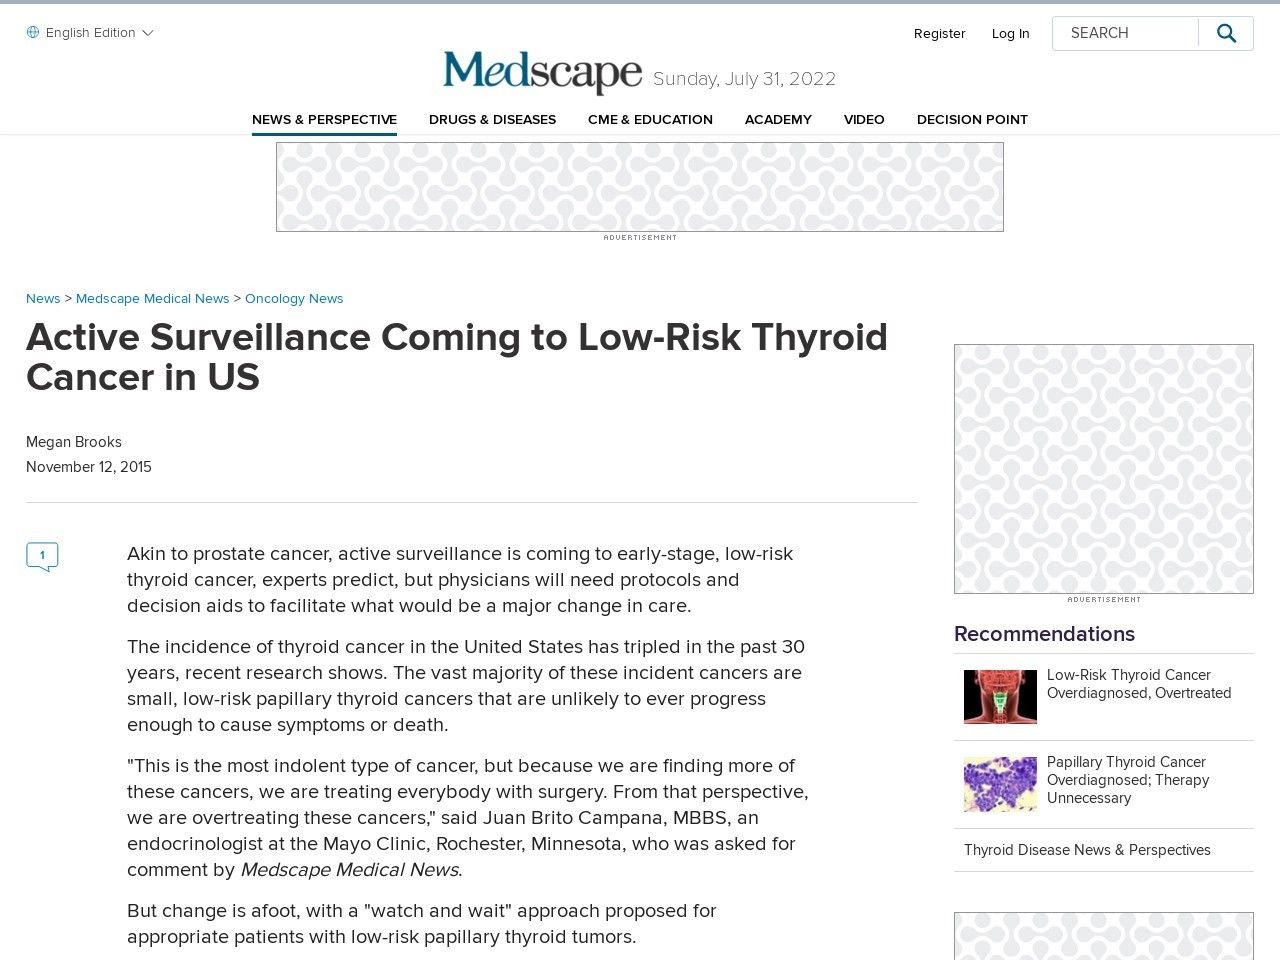 Active Surveillance Coming to Low-Risk Thyroid Cancer in US